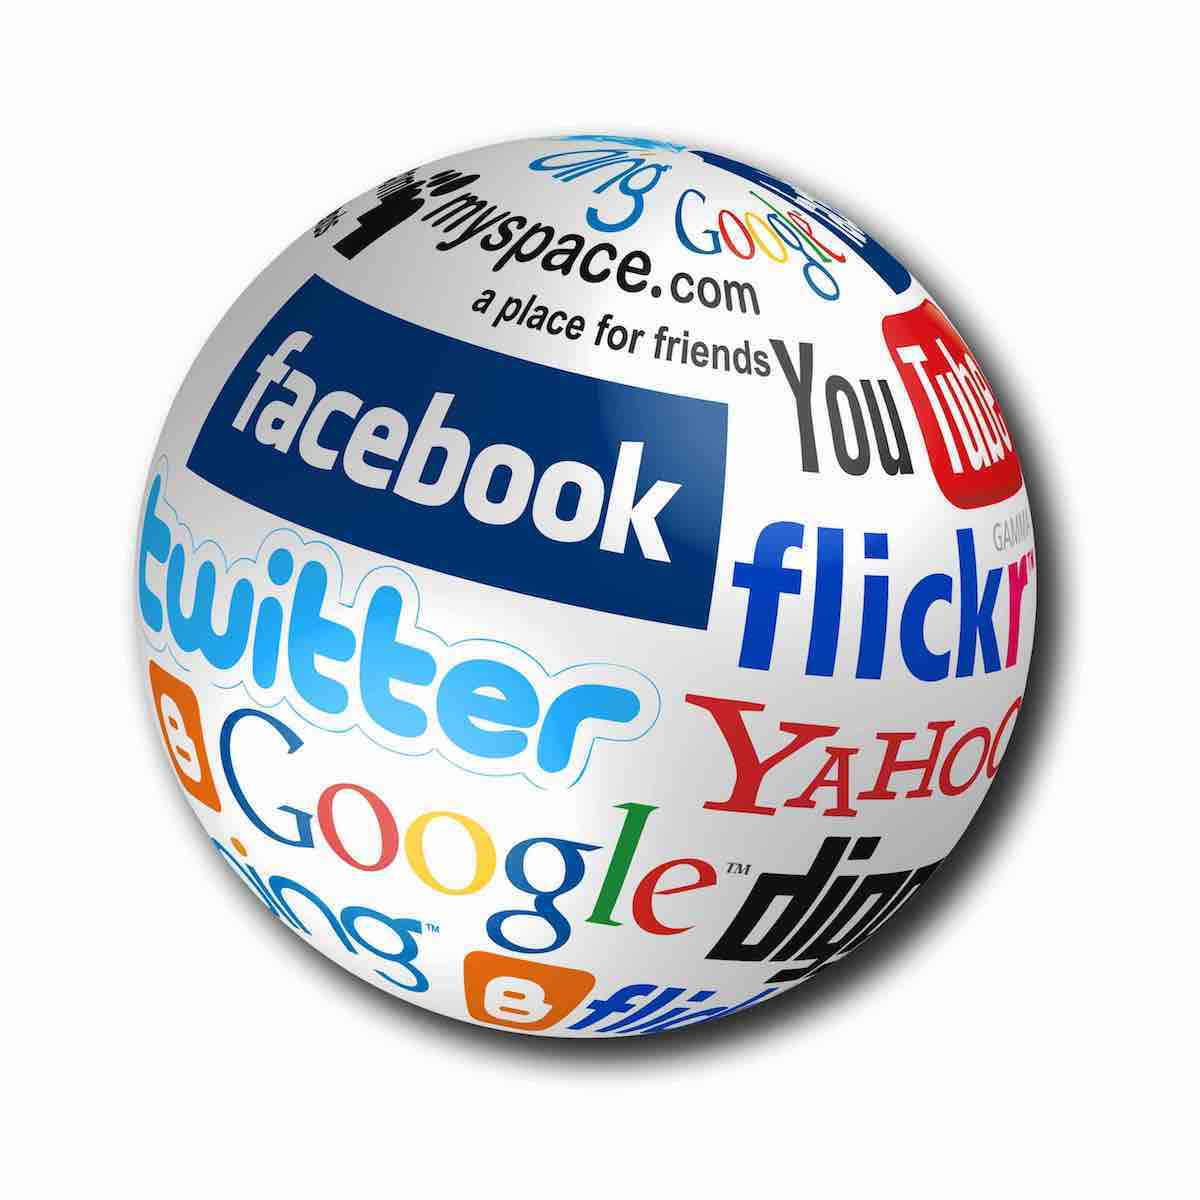 The Best Social Media Marketing Company